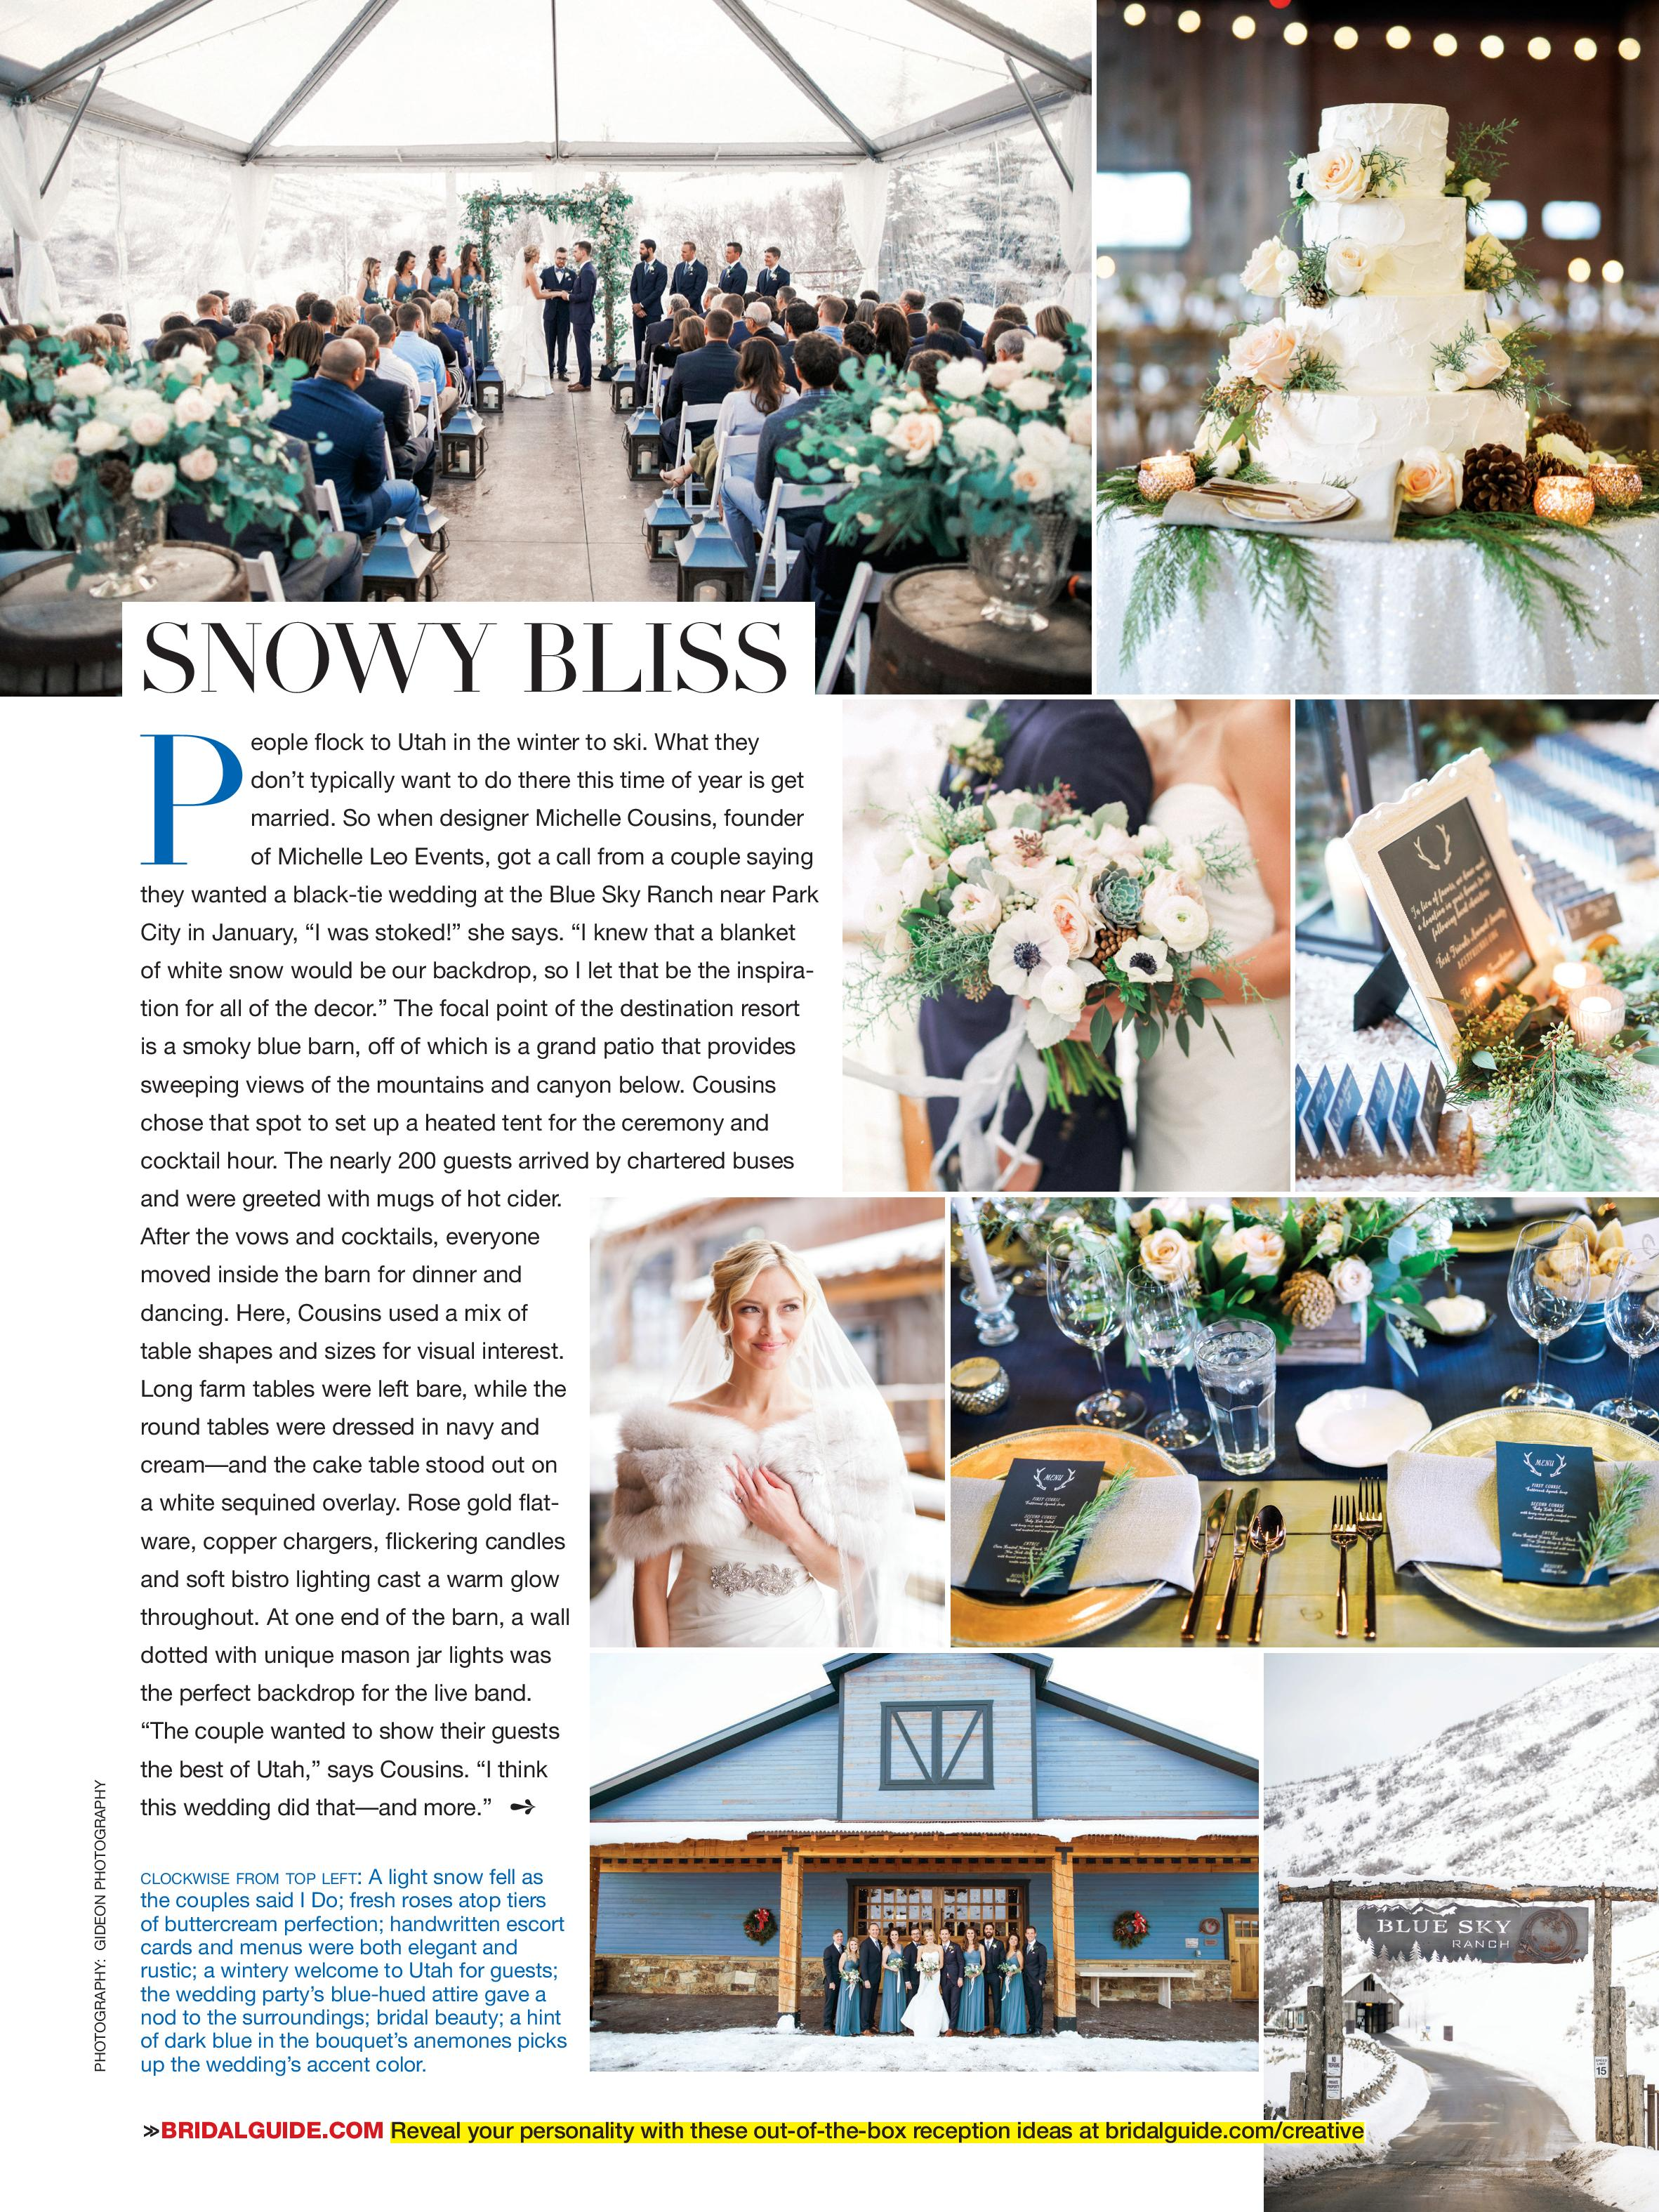 MLE Featured in Bridal Guide Magazine | Winter Ranch Wedding | Fairytale Wedding | Michelle Leo Events | Utah Event Planner and Designer | Gideon Photography